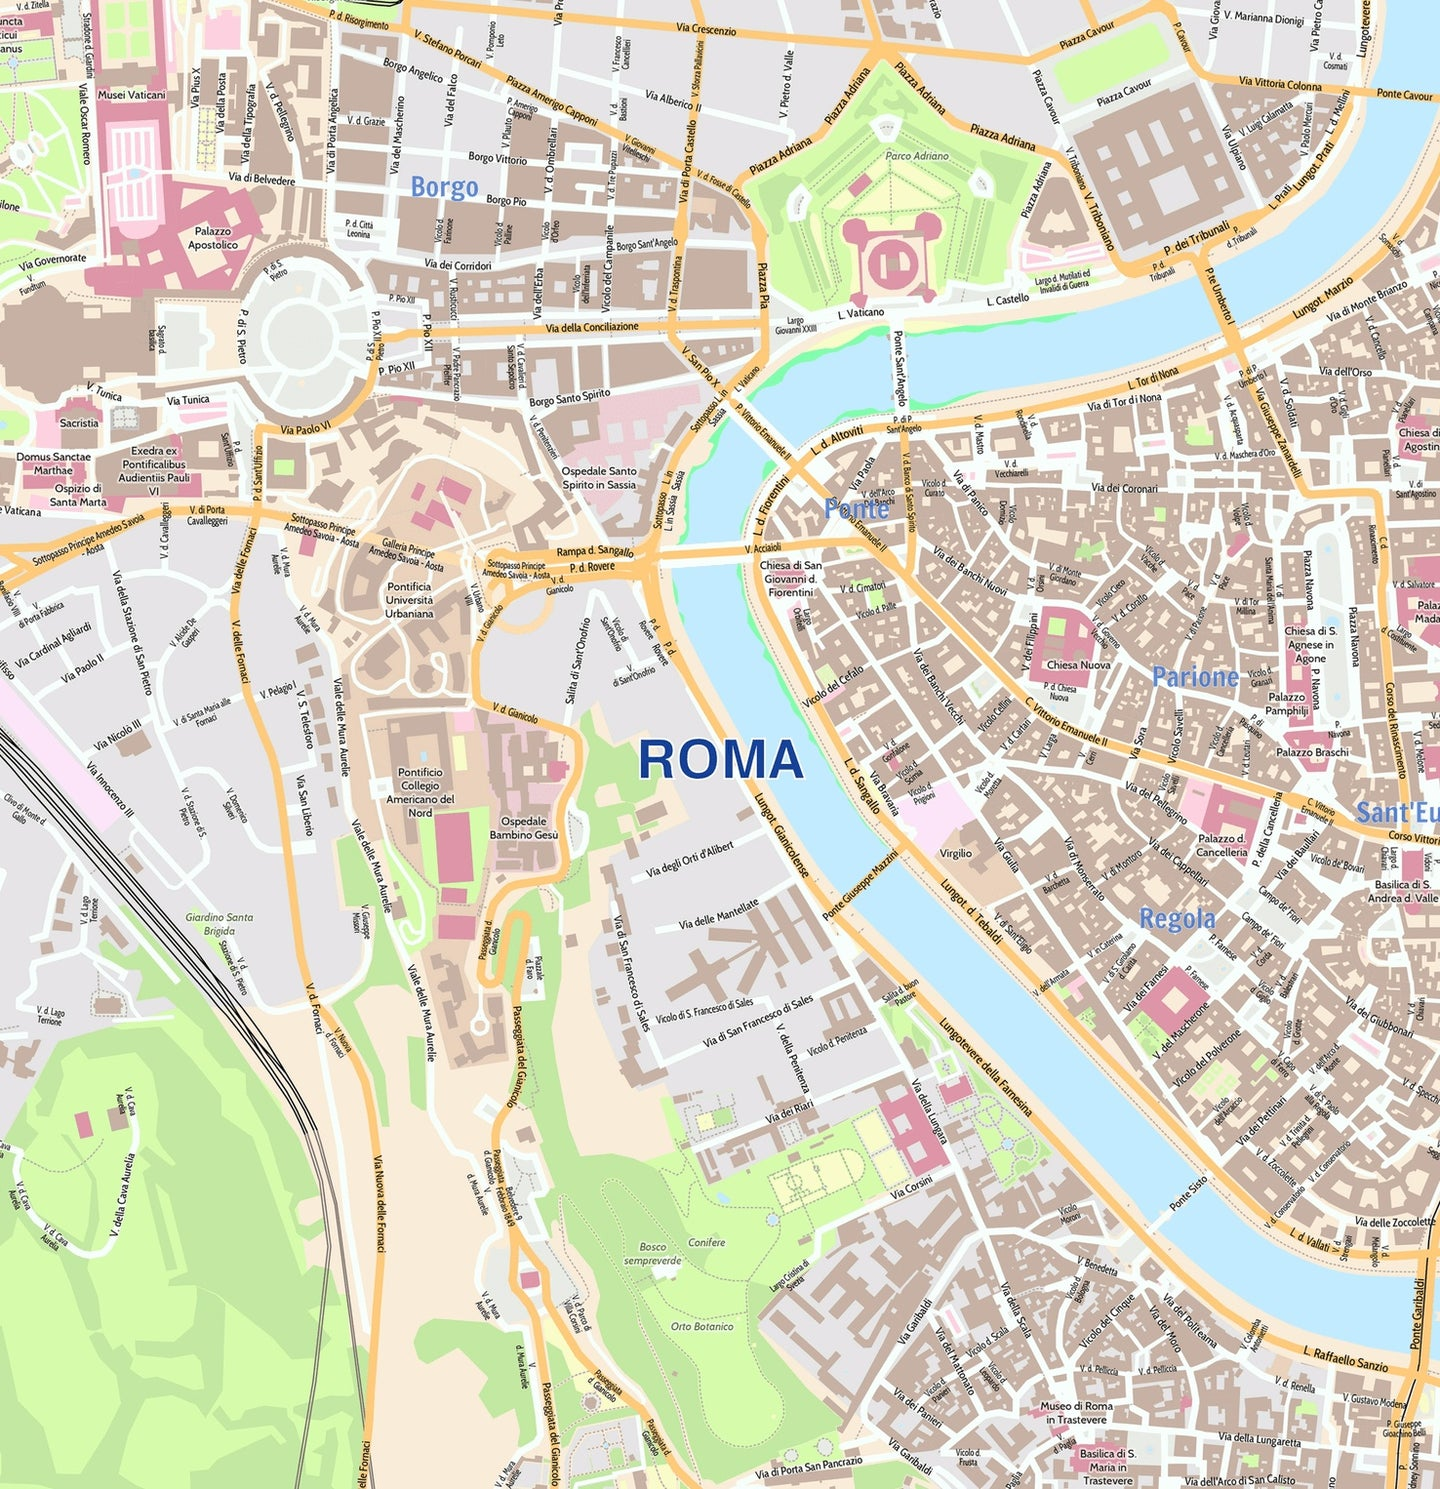 Roma City Map - Laminated Wall Map of Rome, Italy